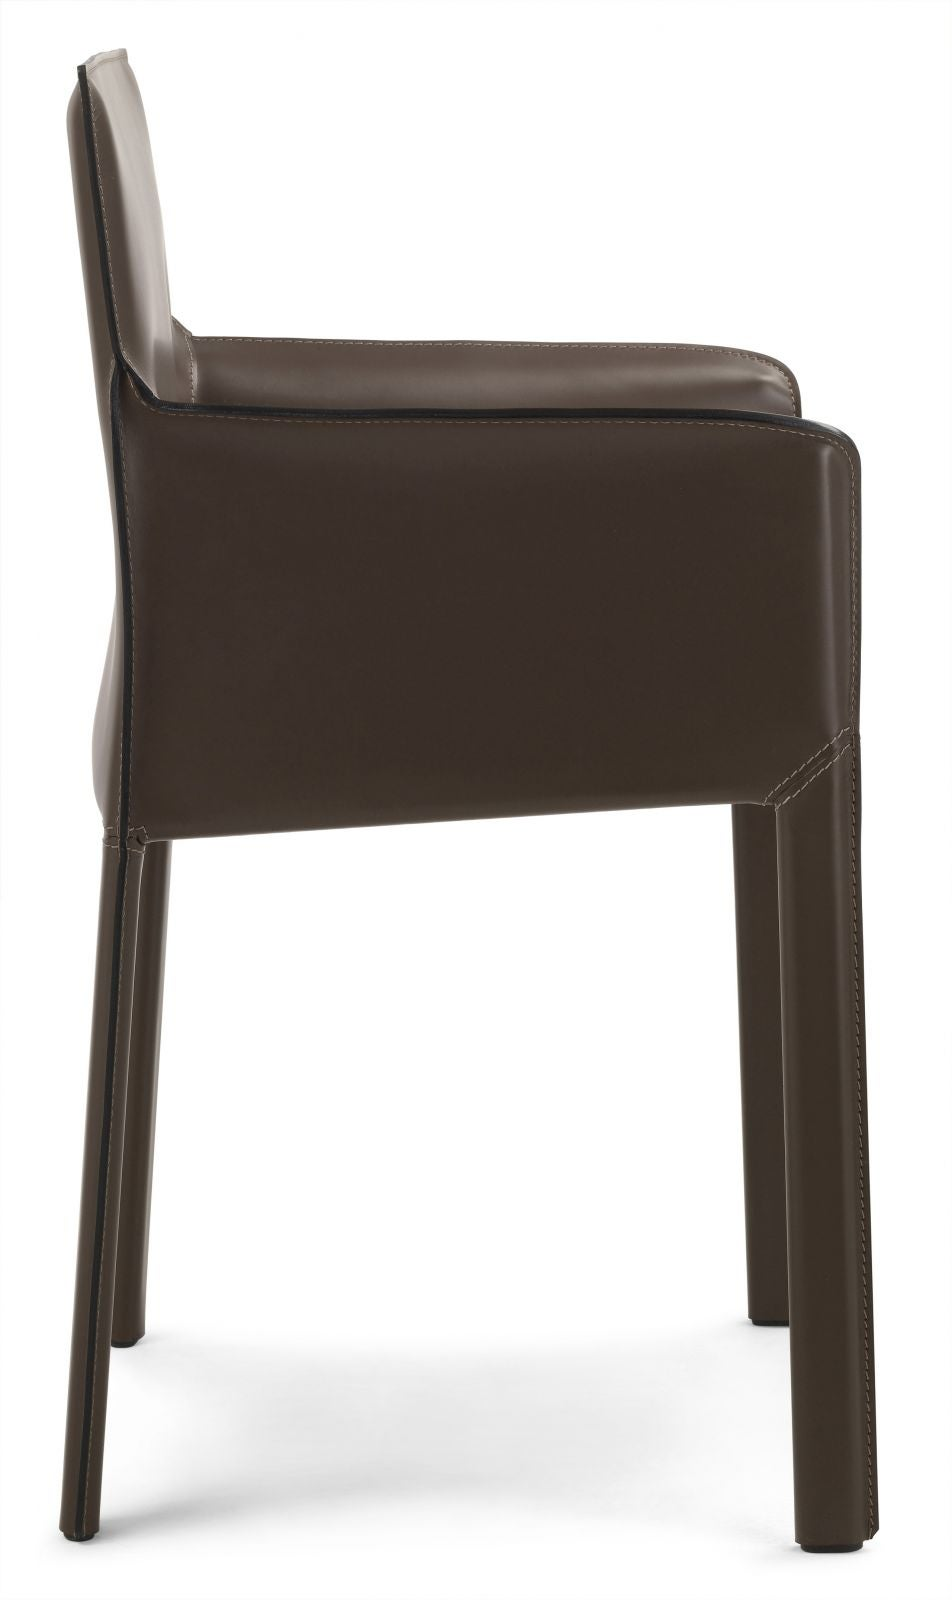 Astonishing Modern Italian Dining Chair Italian Furniture Design Made In Italy Uwap Interior Chair Design Uwaporg